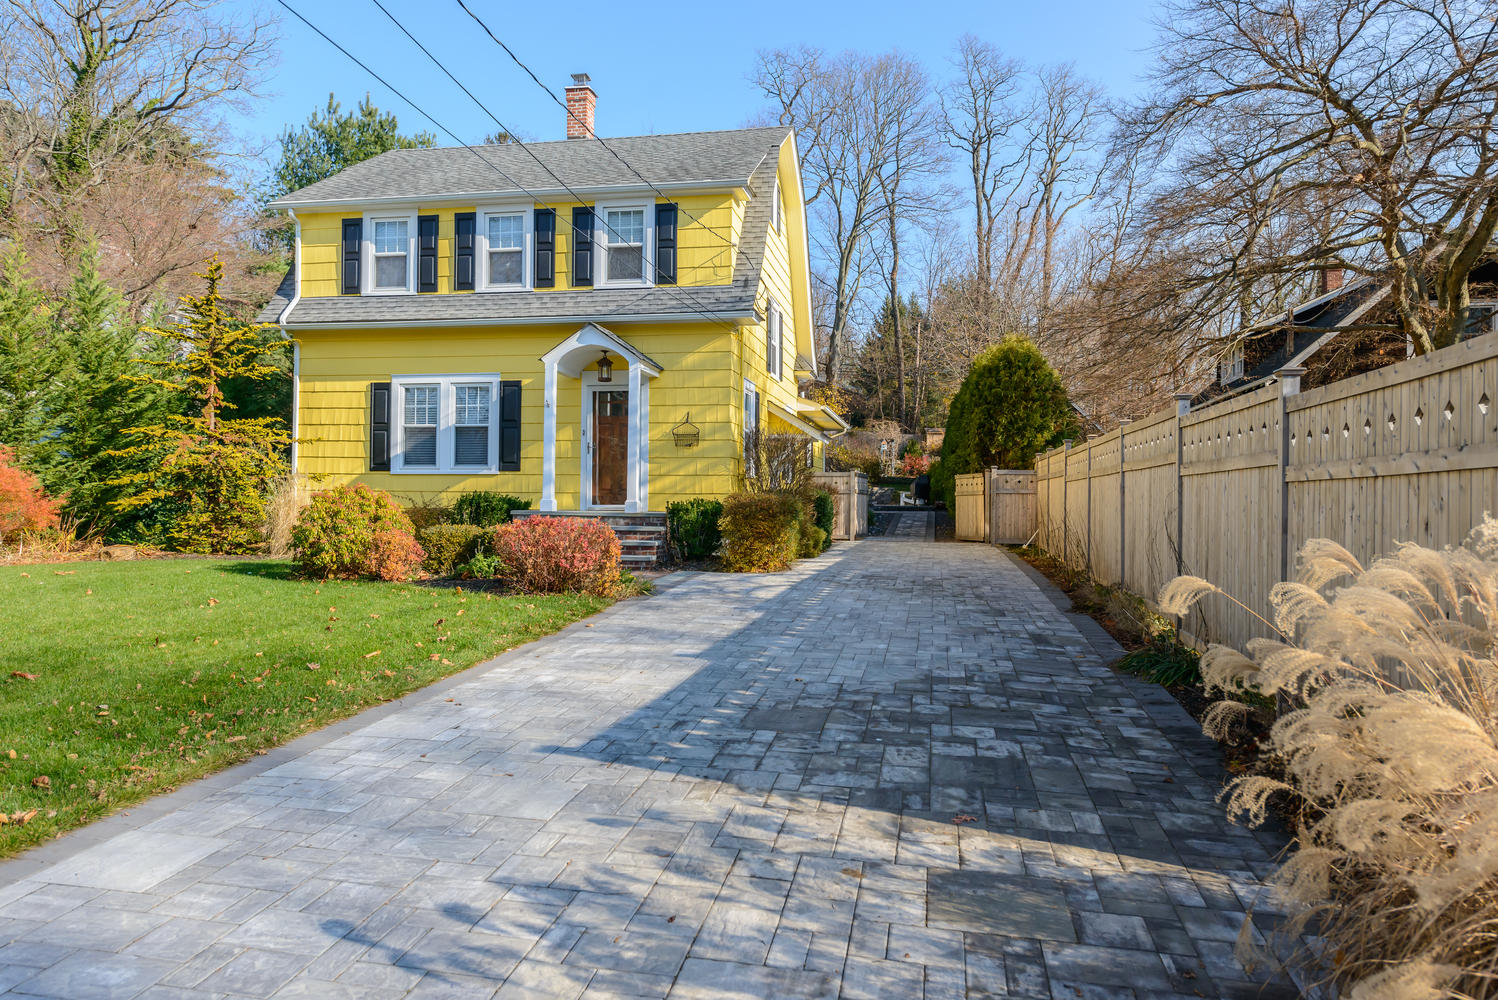 Single Family Home for Sale at Colonial 14 Prospect Rd Centerport, New York 11721 United States